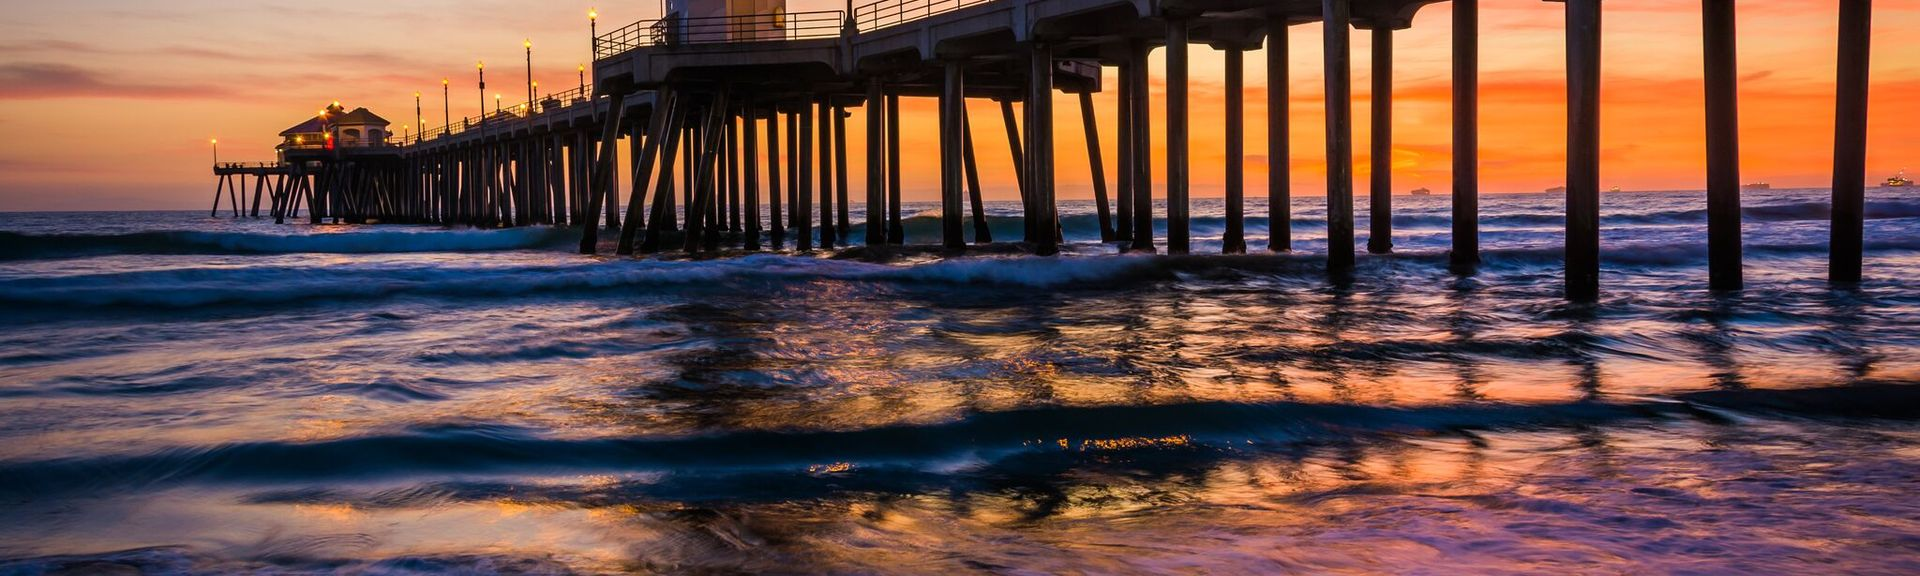 Huntington Beach, California, United States of America